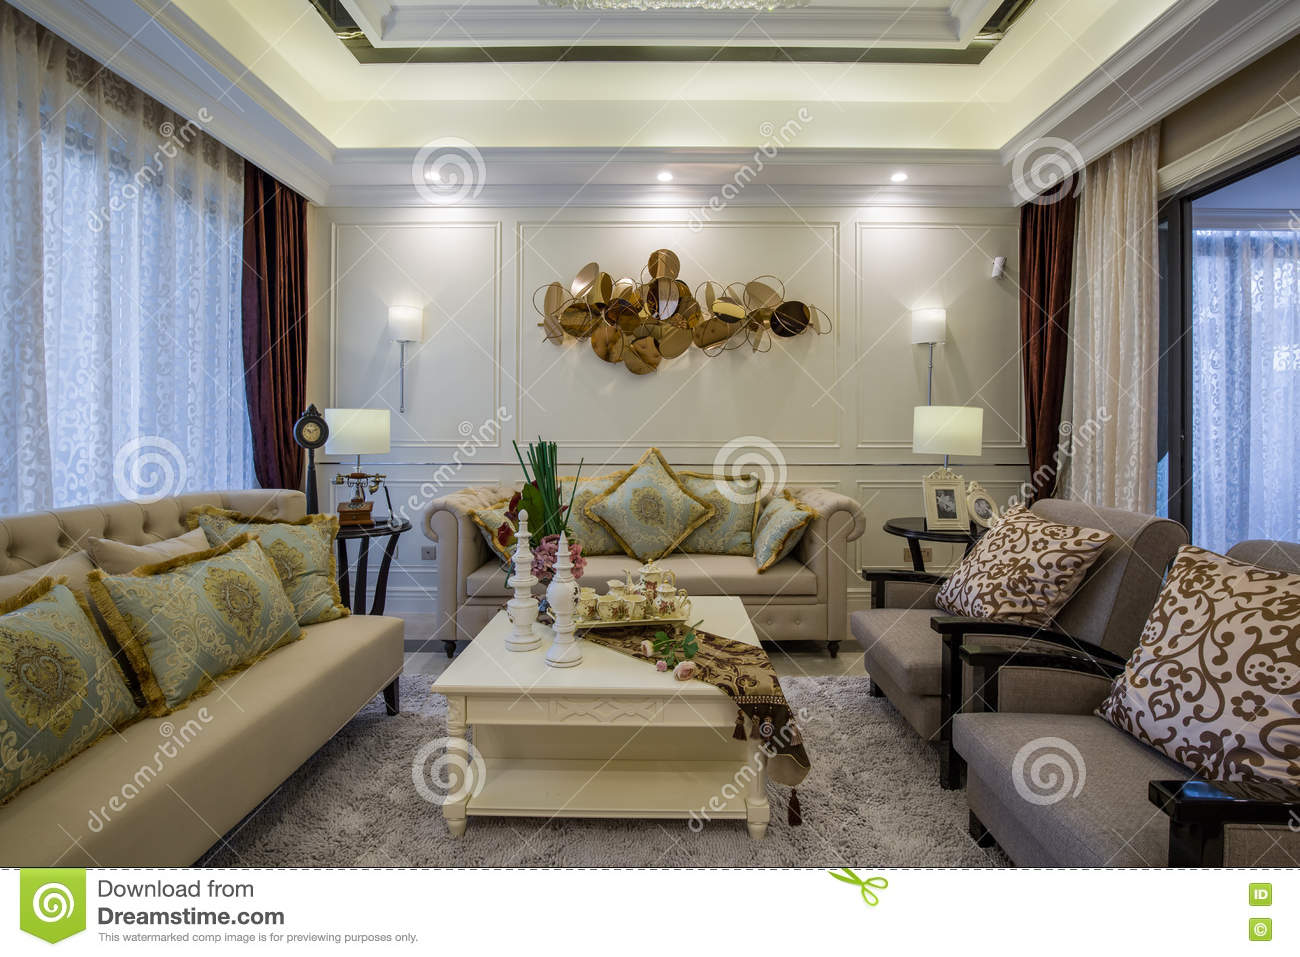 royalty free stock photo download modern luxury interior home design parlor living room